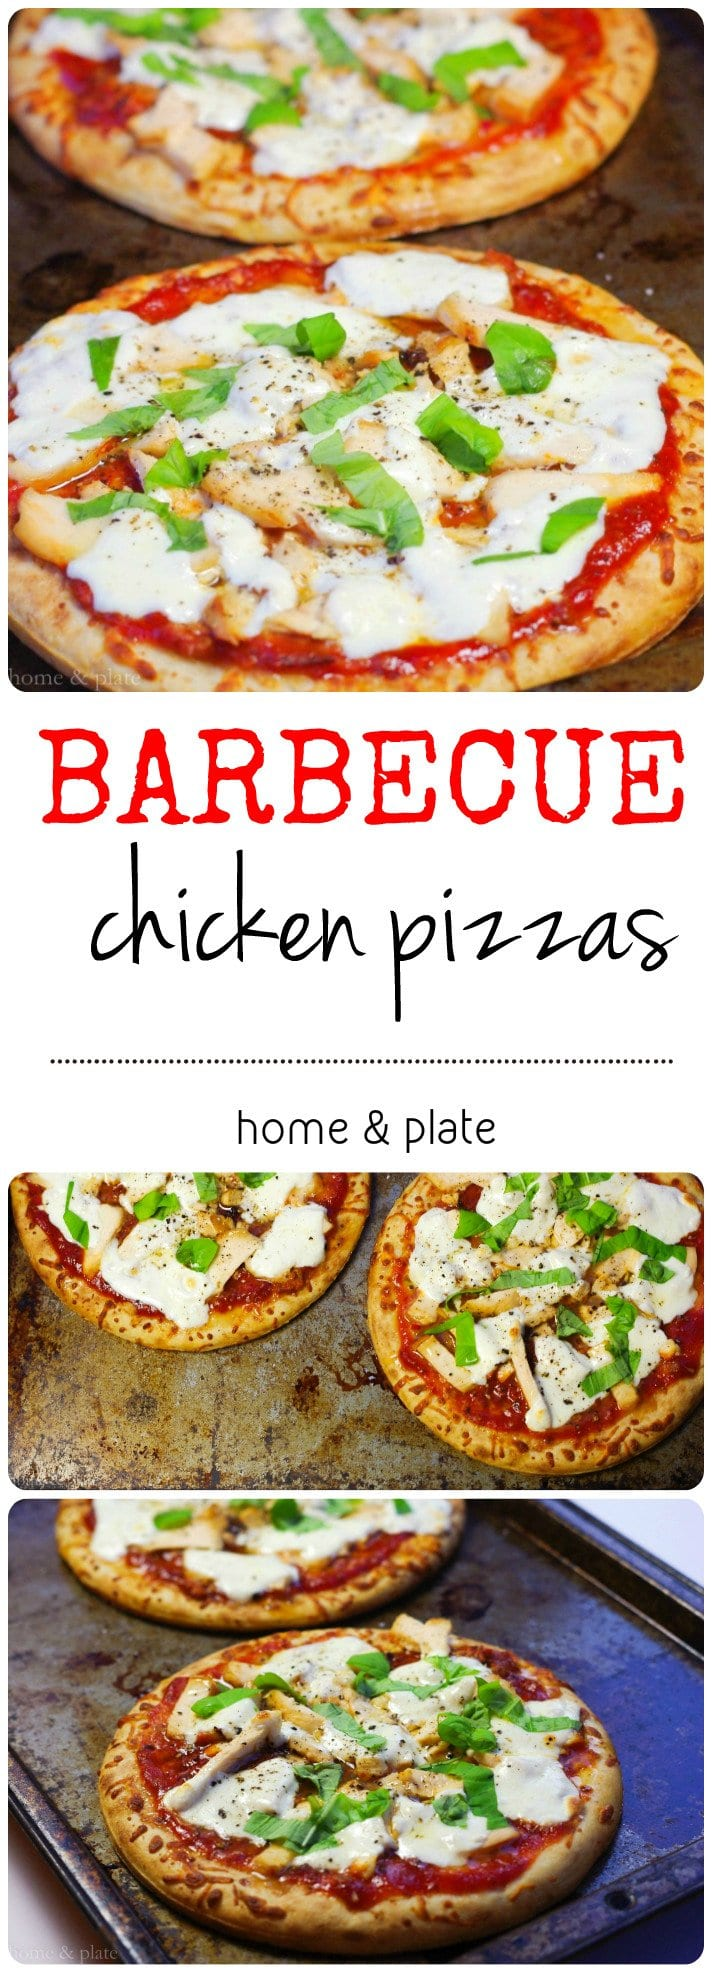 Individual Barbecue Chicken Pizzas | Home & Plate | www.homeandplate.com | Leftover barbecued chicken paired with sweet and spicy barbecue sauce with fresh mozzarella cheese – Yum